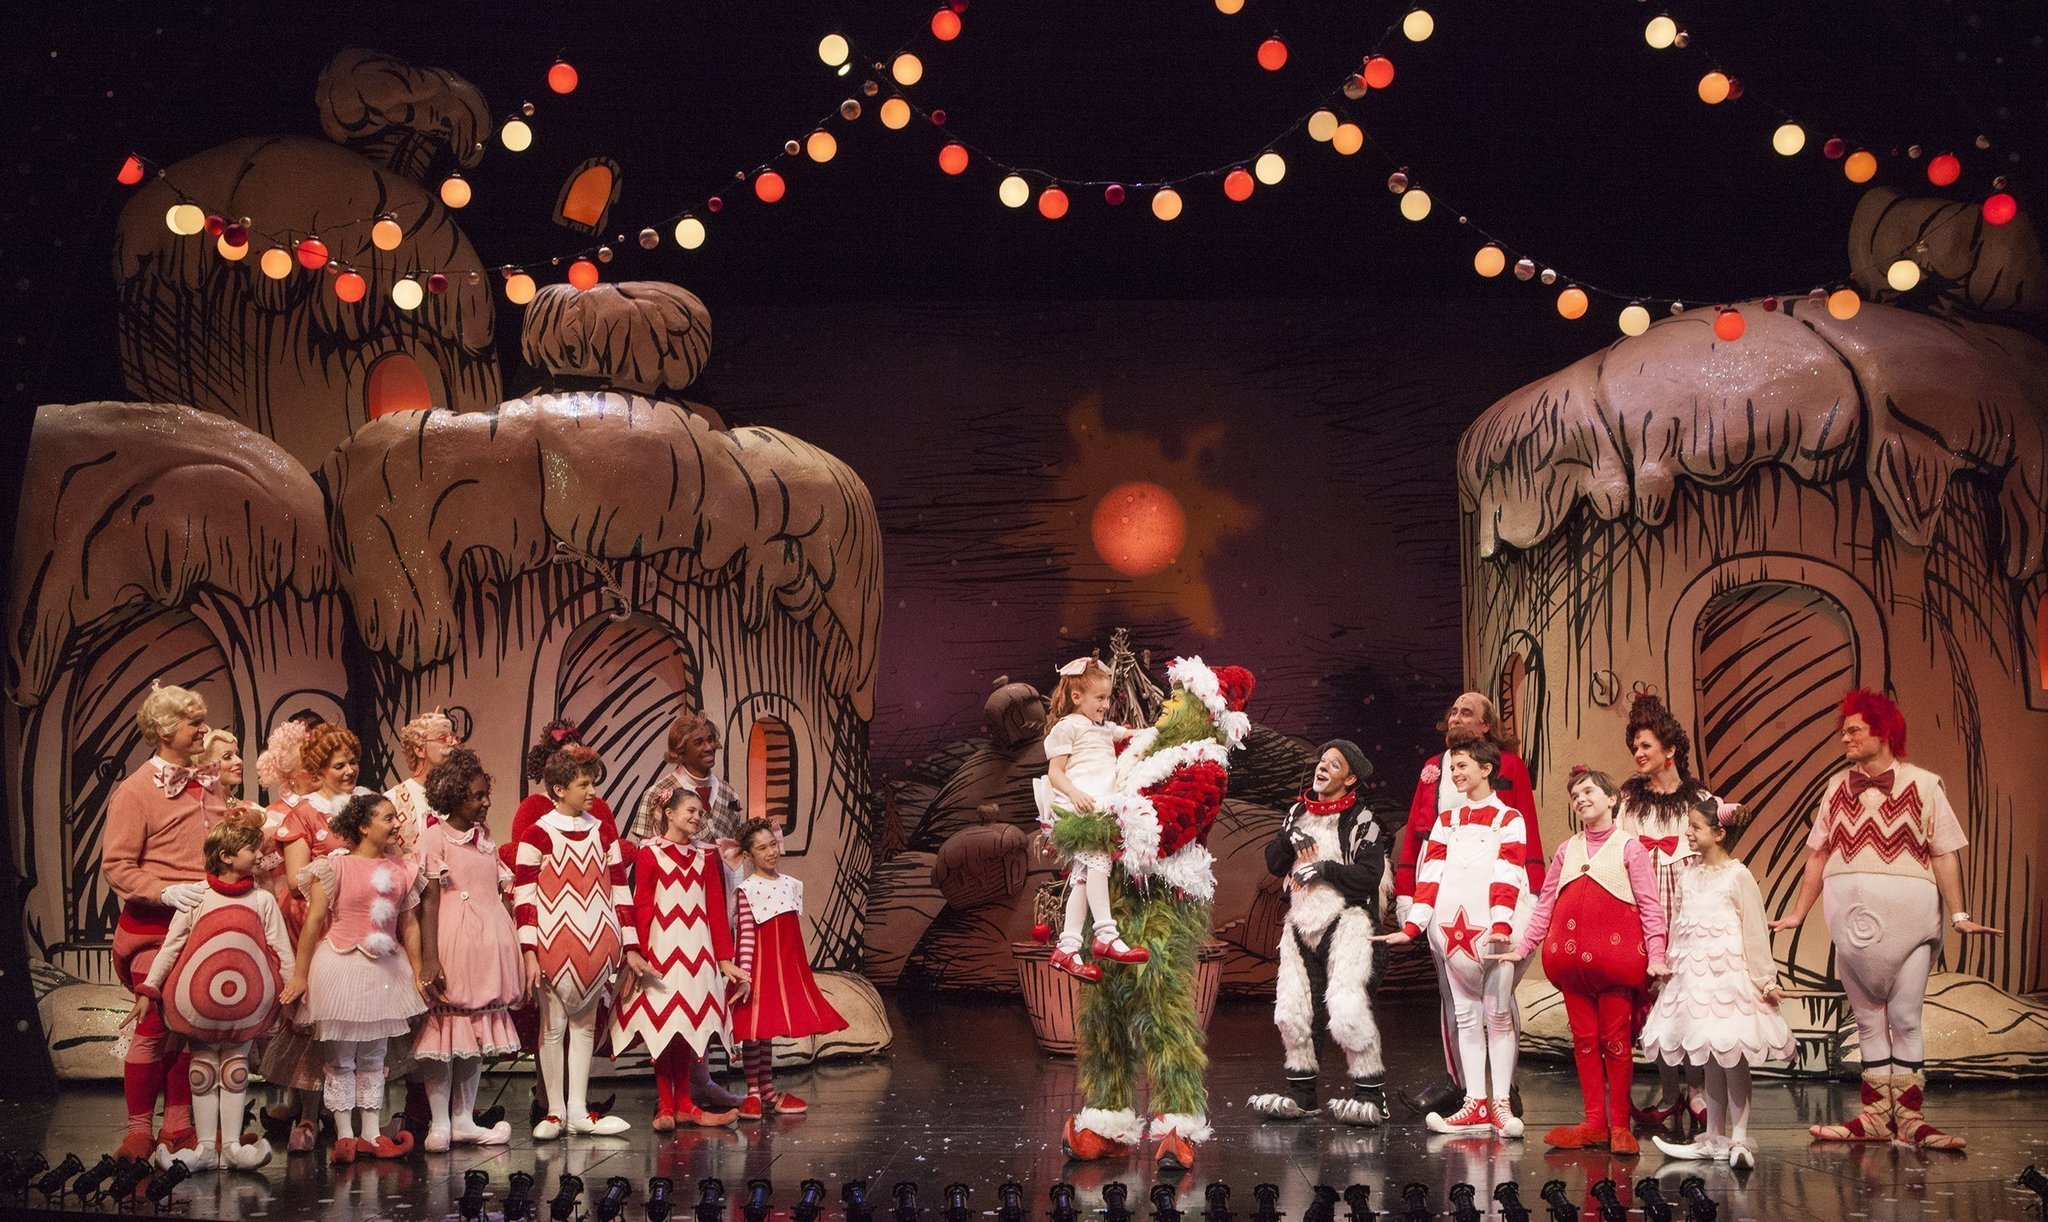 backstage who tube video series a show all its own at the old globe theatre the san diego union tribune - Cast Of How The Grinch Stole Christmas